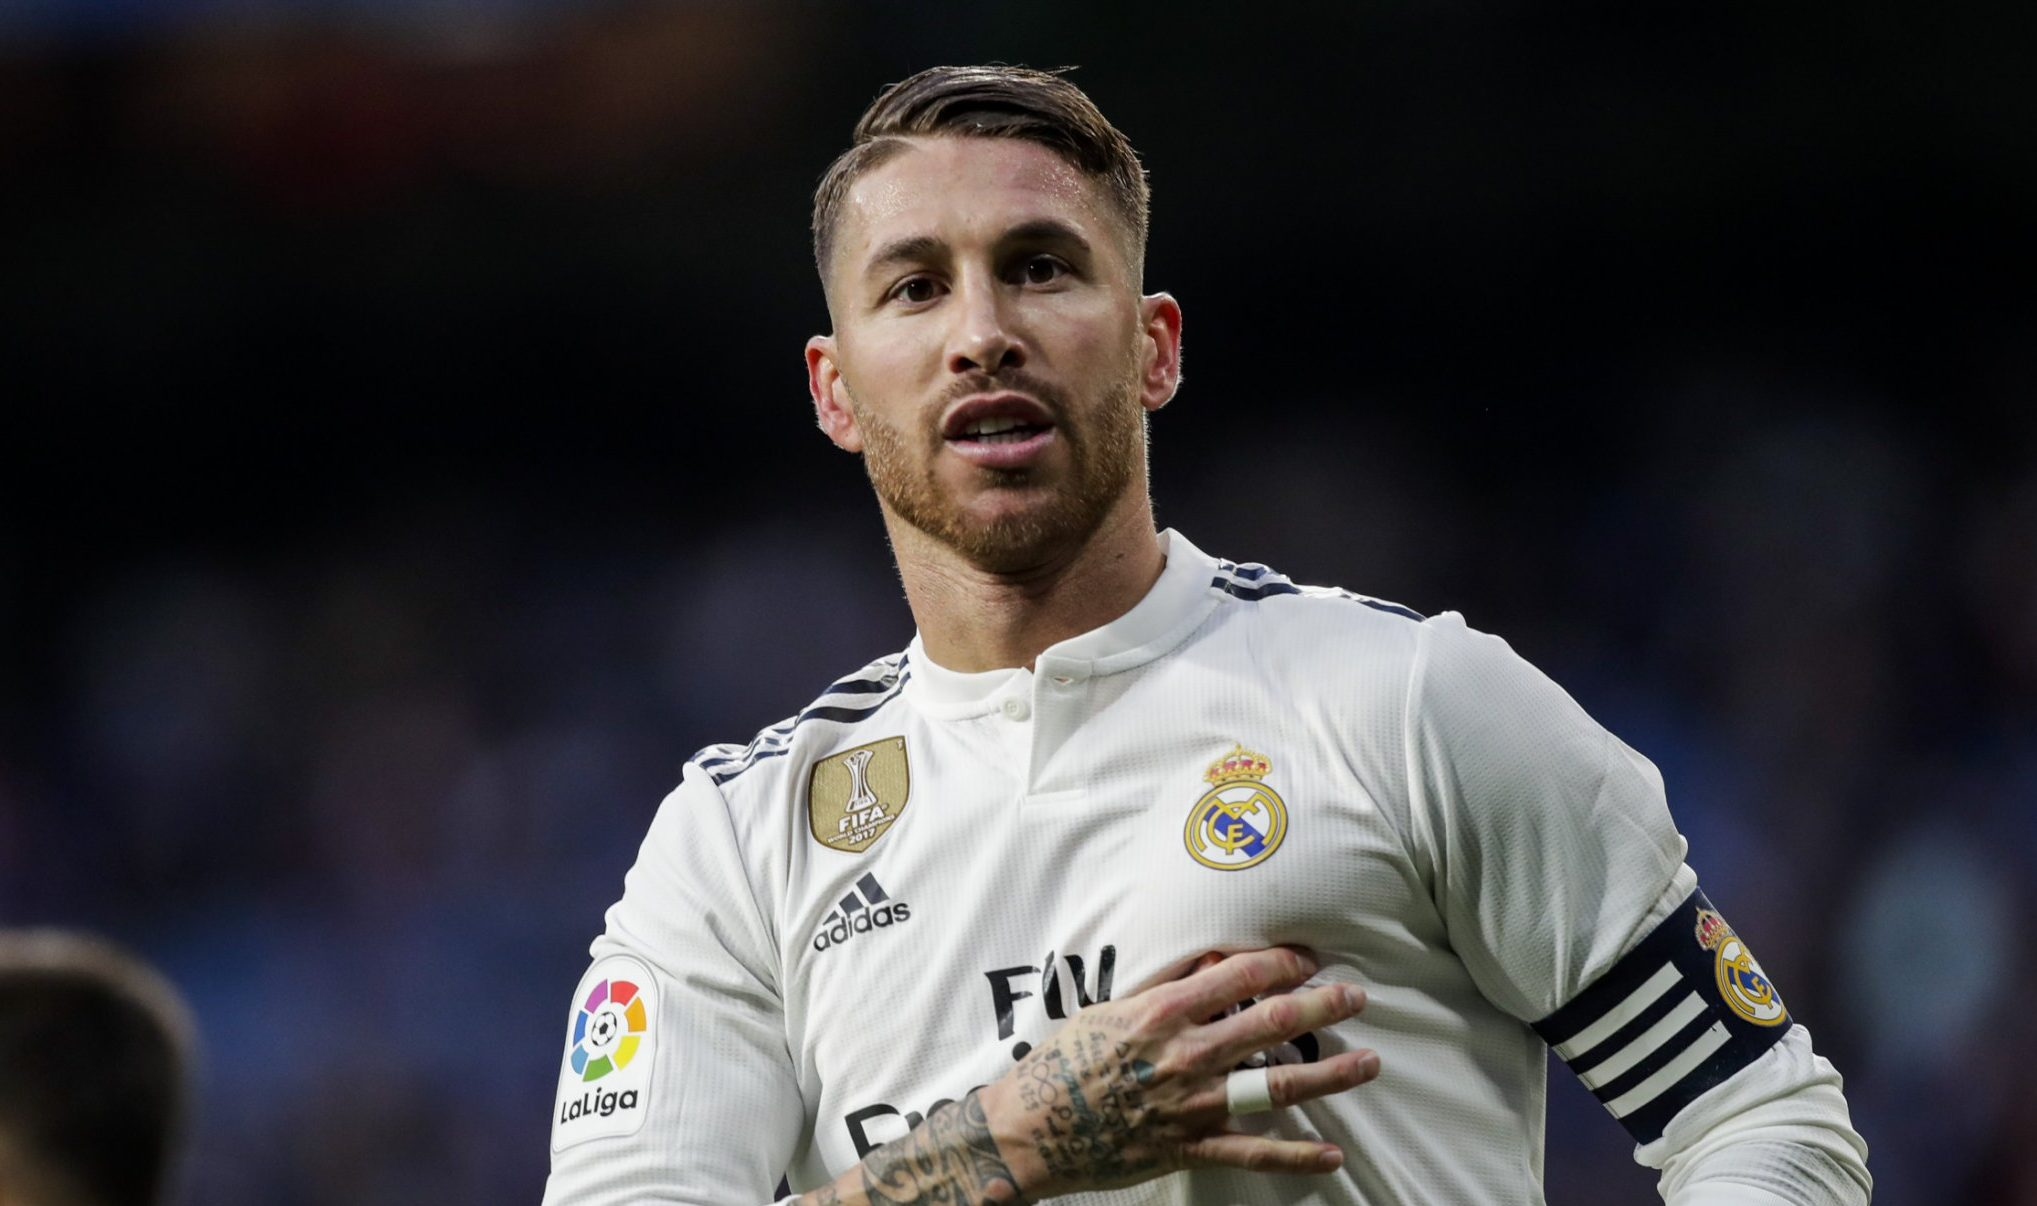 Sergio Ramos accused of failing doping test after Real Madrid beat Juventus in Champions League final